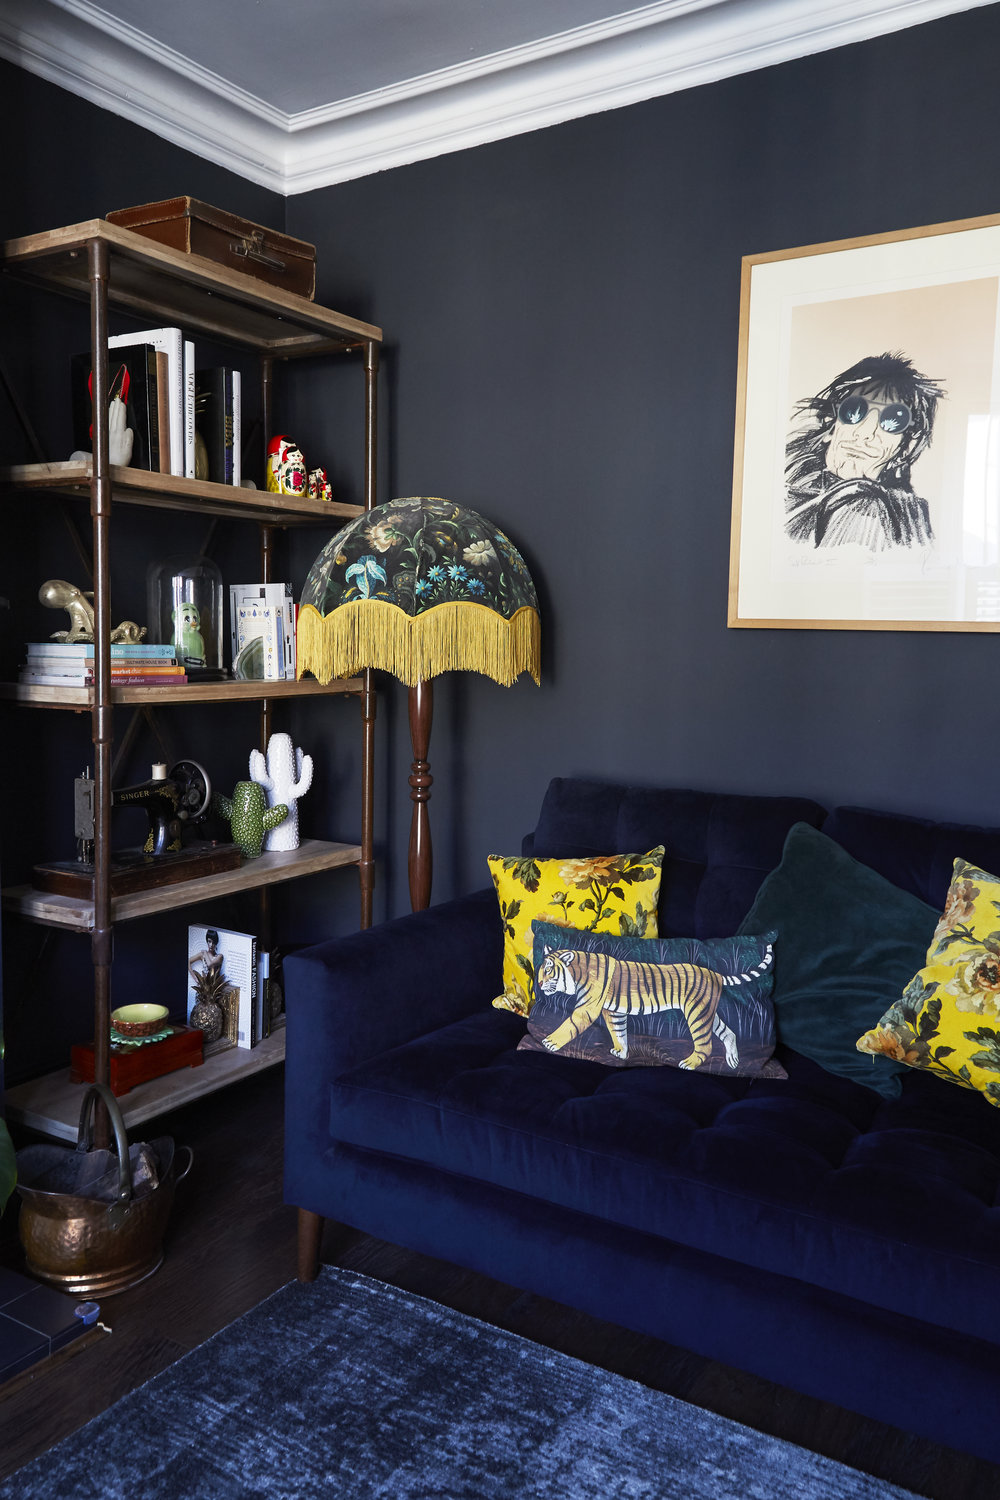 Draper Navy velvet sofa   £1,499 , From   John Lewis  ;   Distressed Arabesque Wool Rug - Steel   £449, From   West Elm  ; Lampshade was made by me.   See blog post for details.